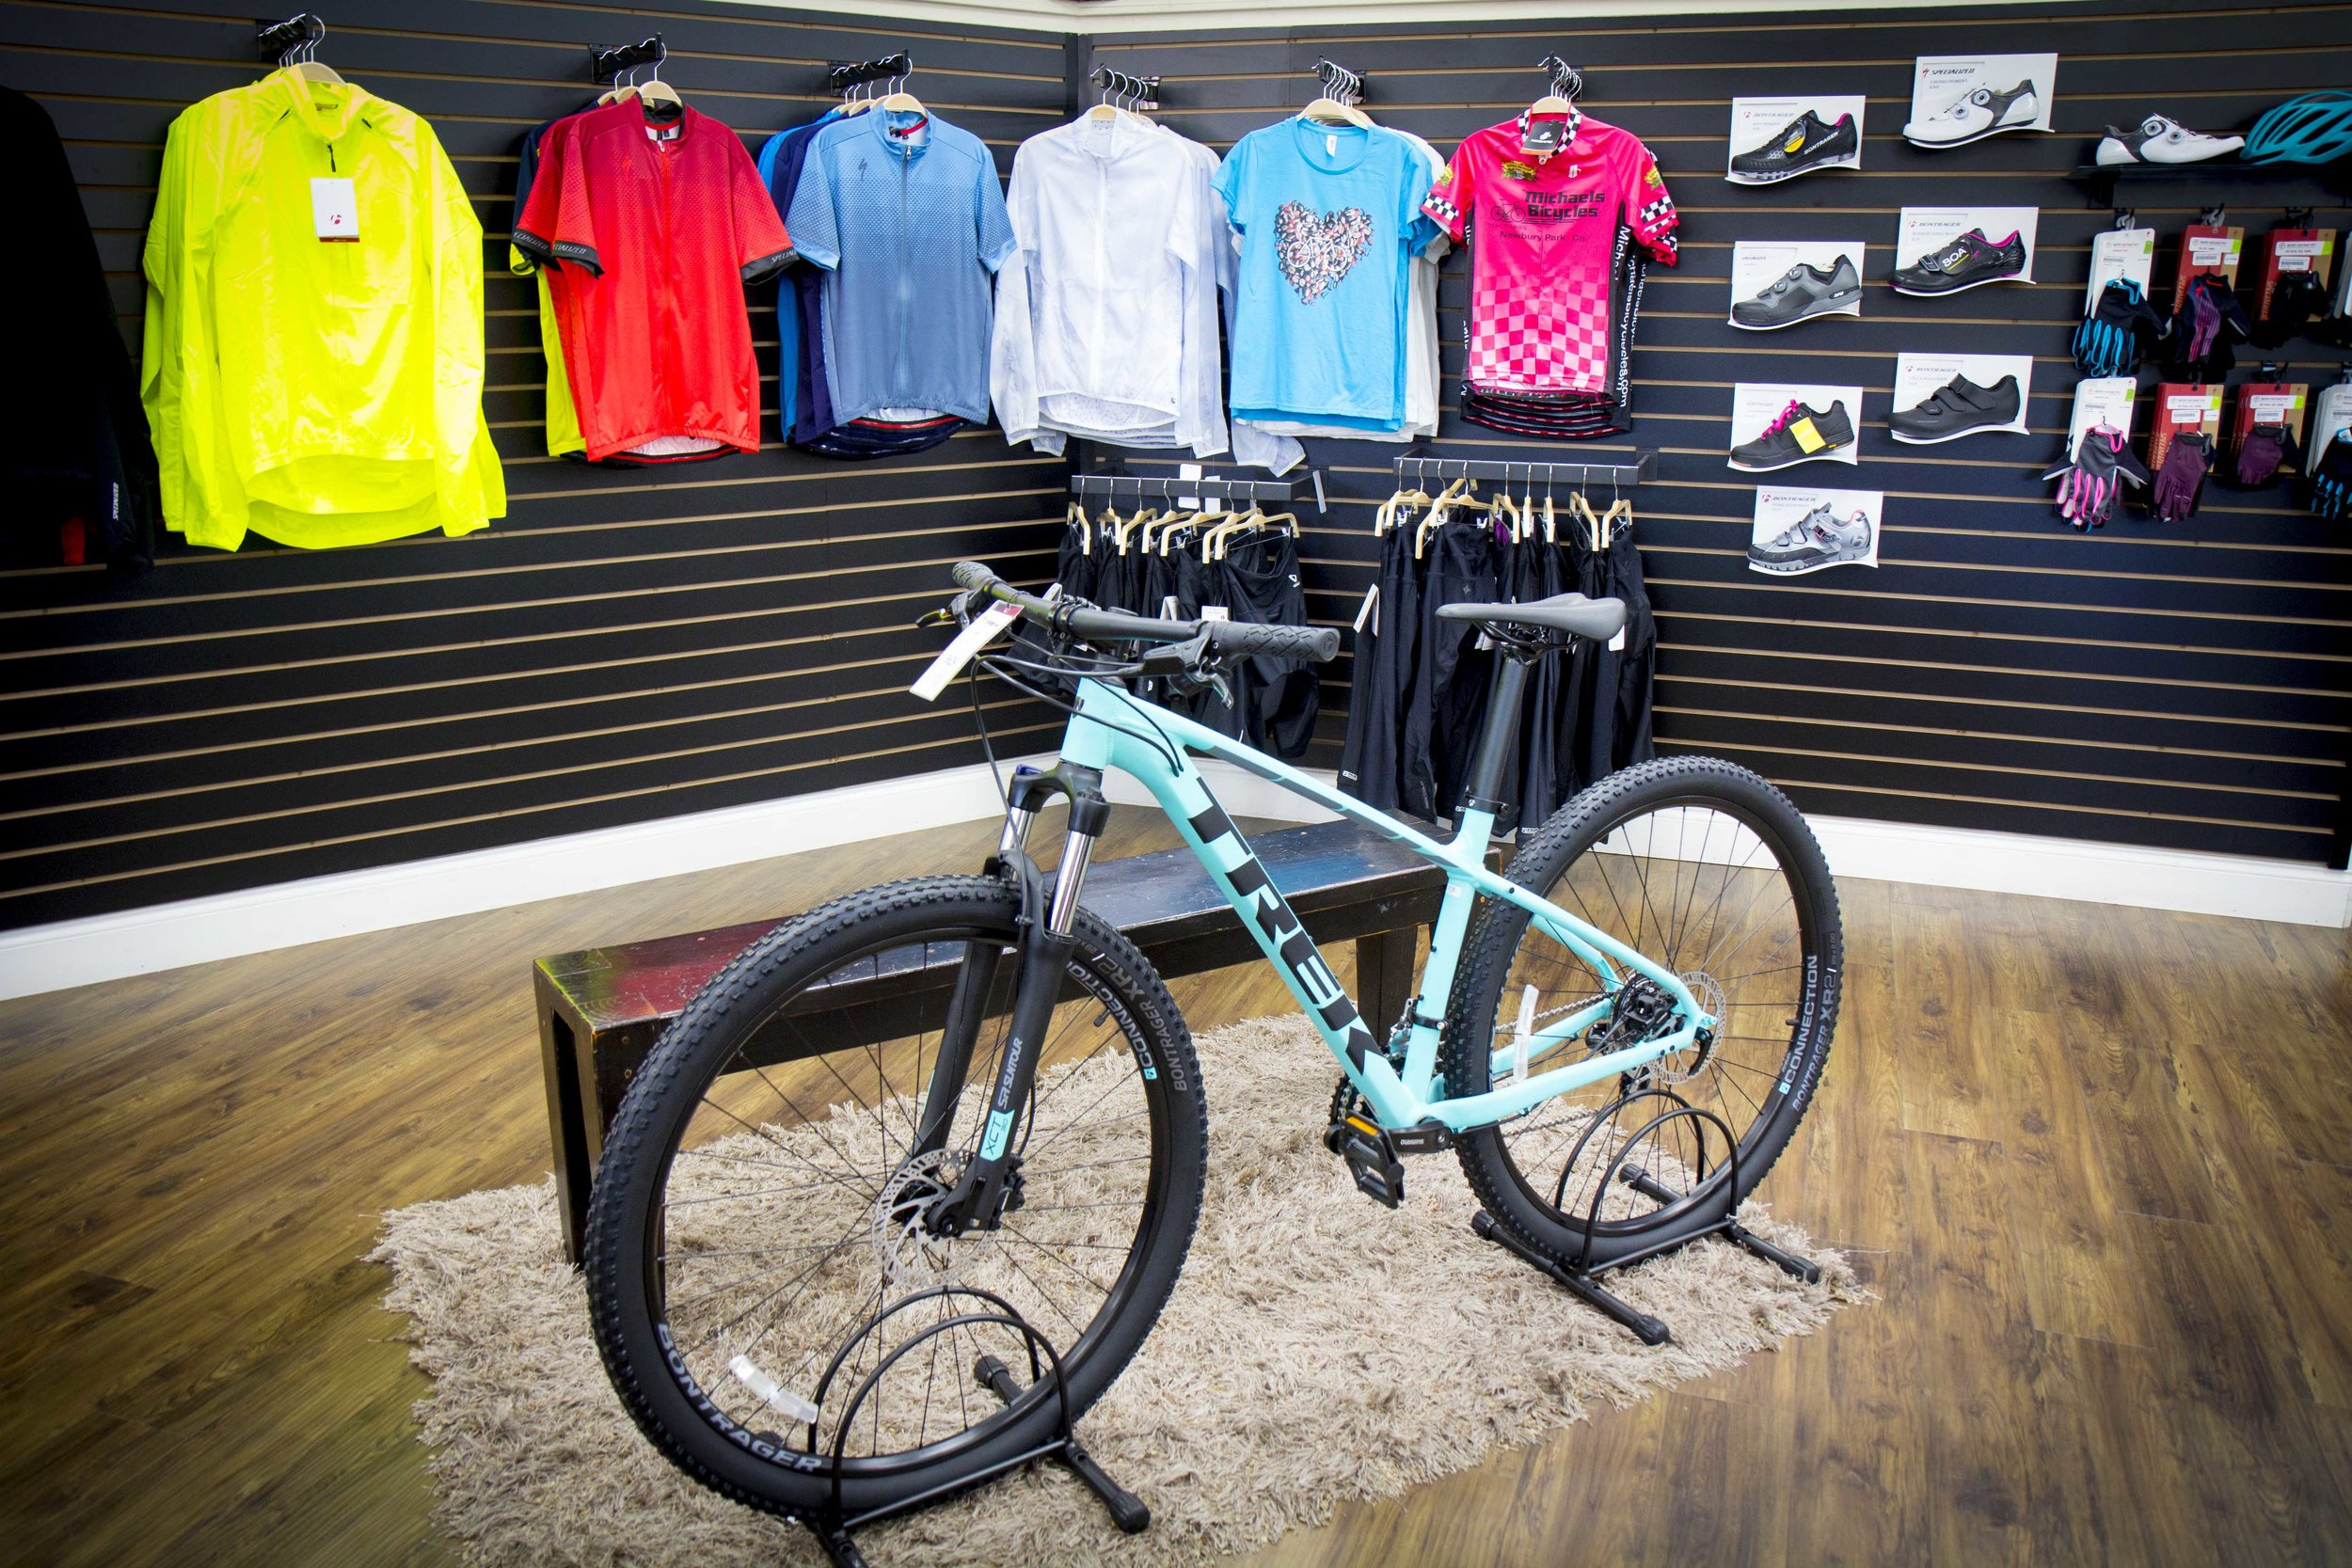 Accessories and Clothing - - We have a wide variety of Clothing, Helmets, Cycling Shoes, Gloves, Socks and everything else you need for your next ride!